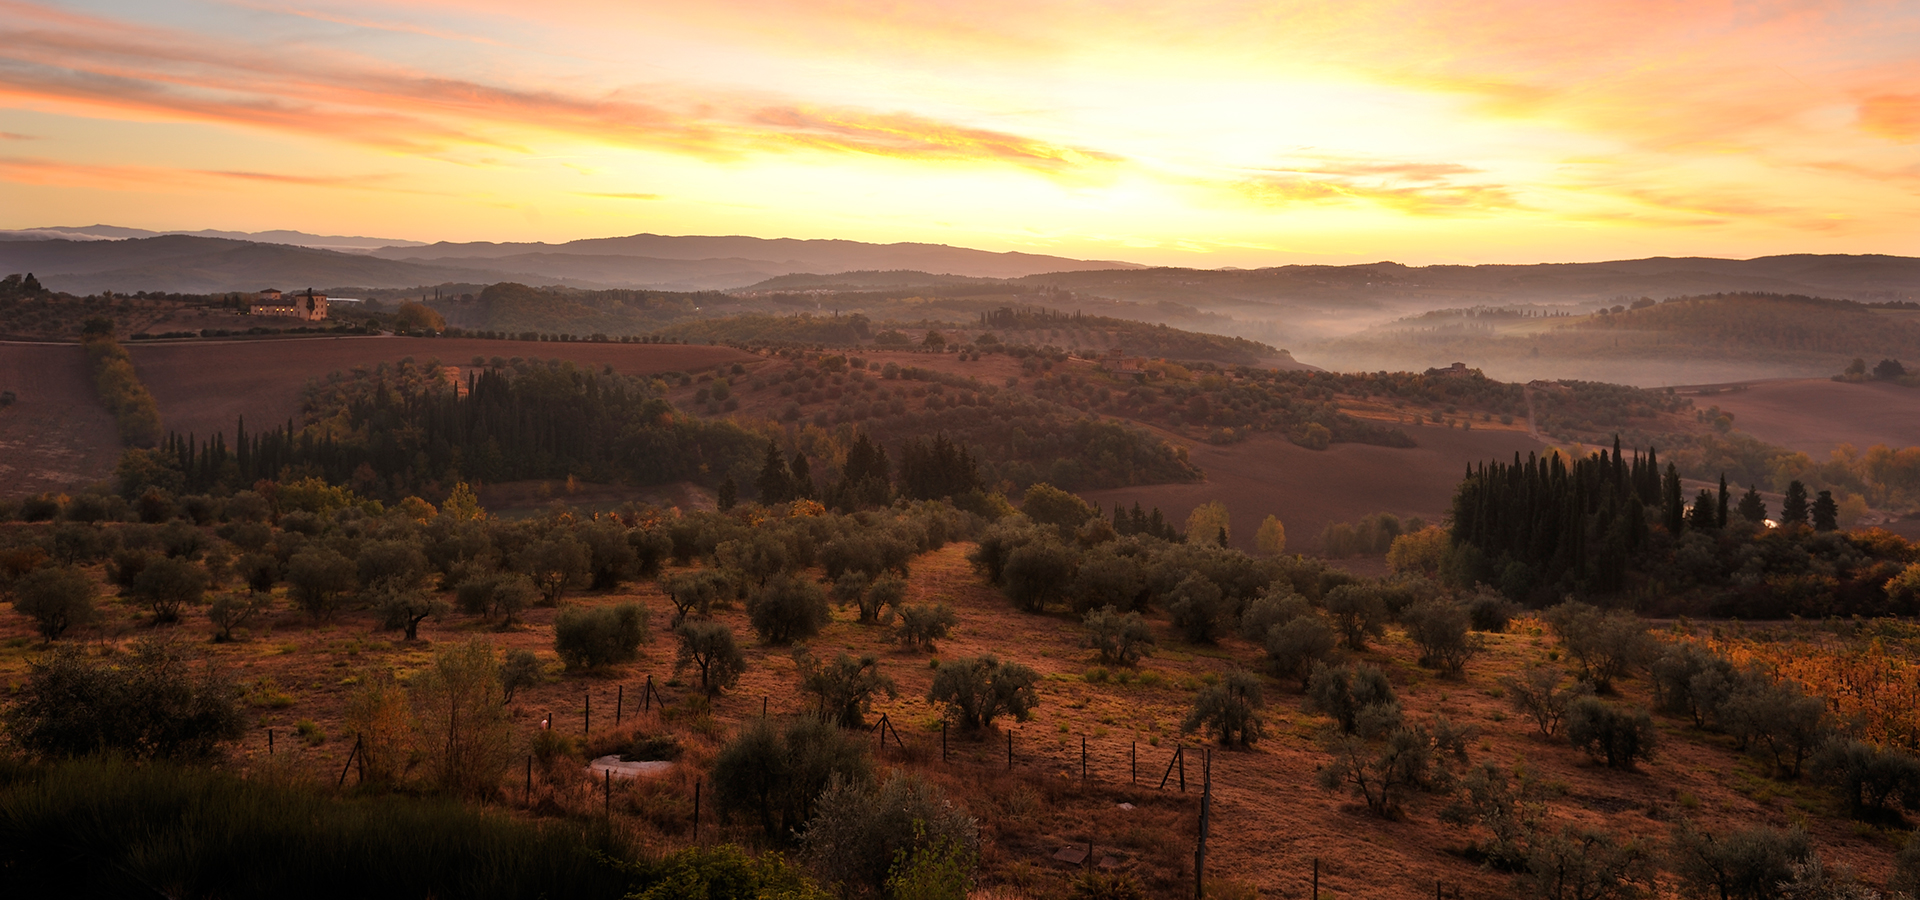 Photo of Tuscany, Italy